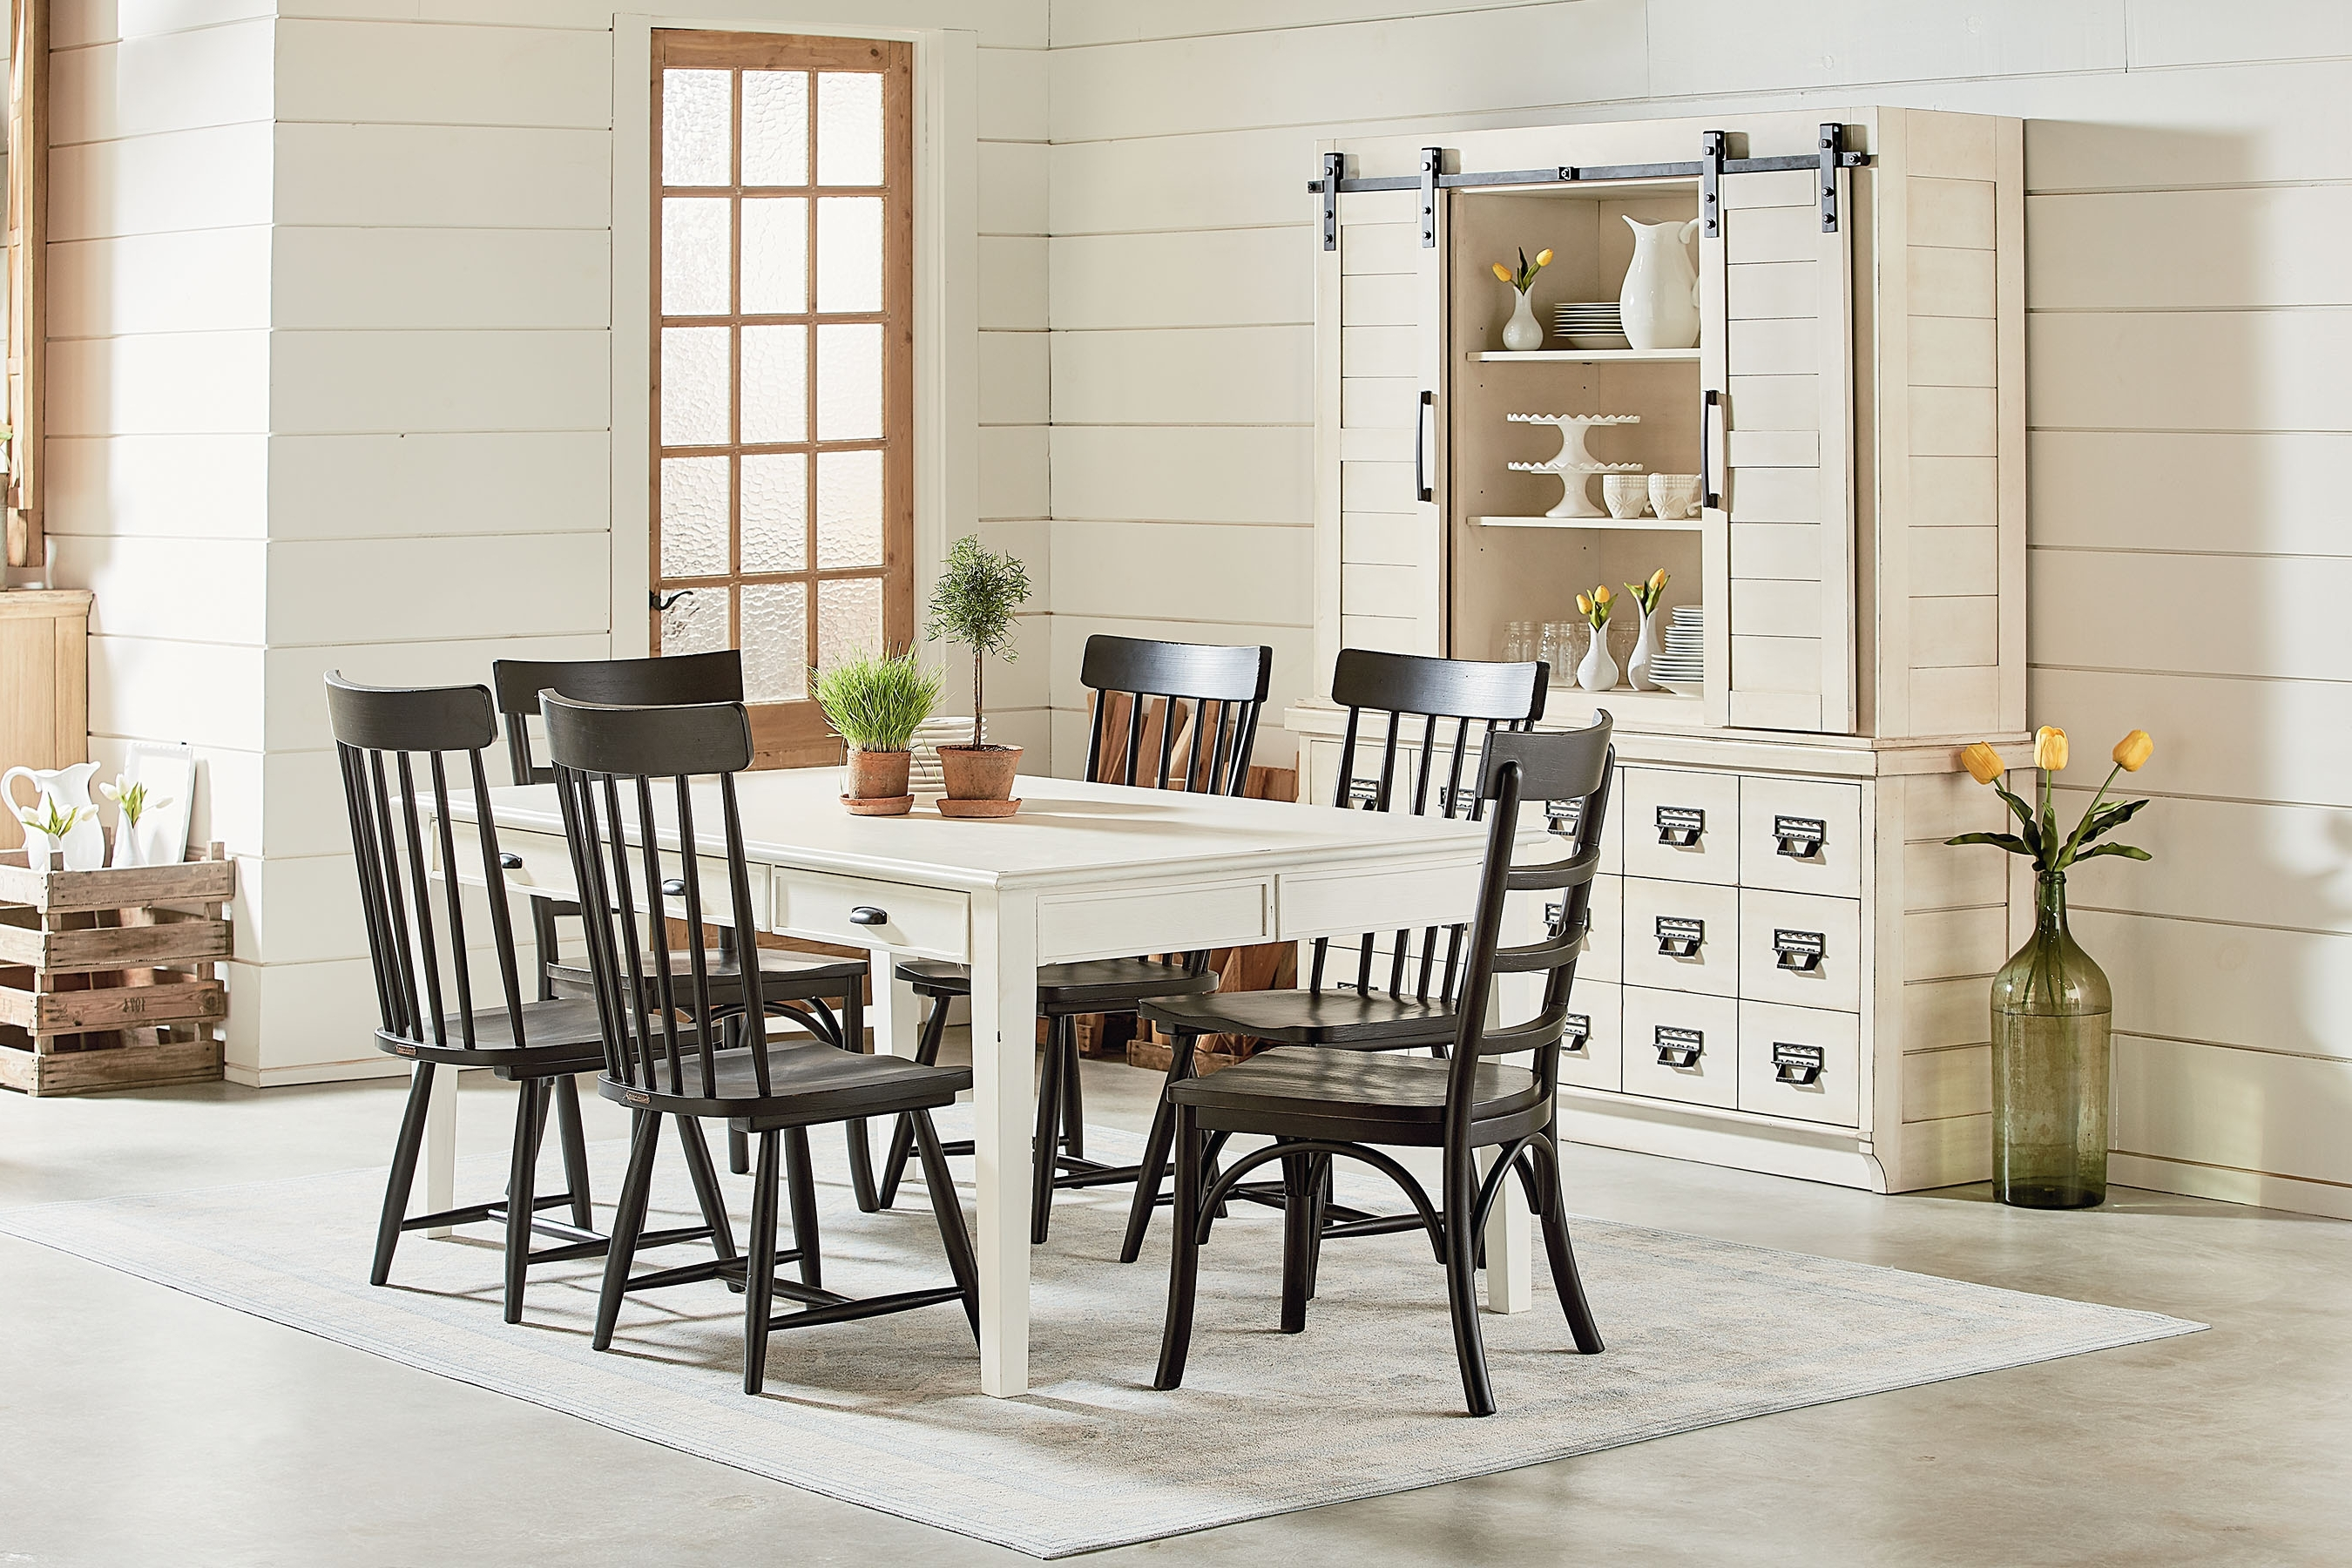 Keeping Dining Table - Magnolia Home with regard to Trendy Magnolia Home Bench Keeping 96 Inch Dining Tables